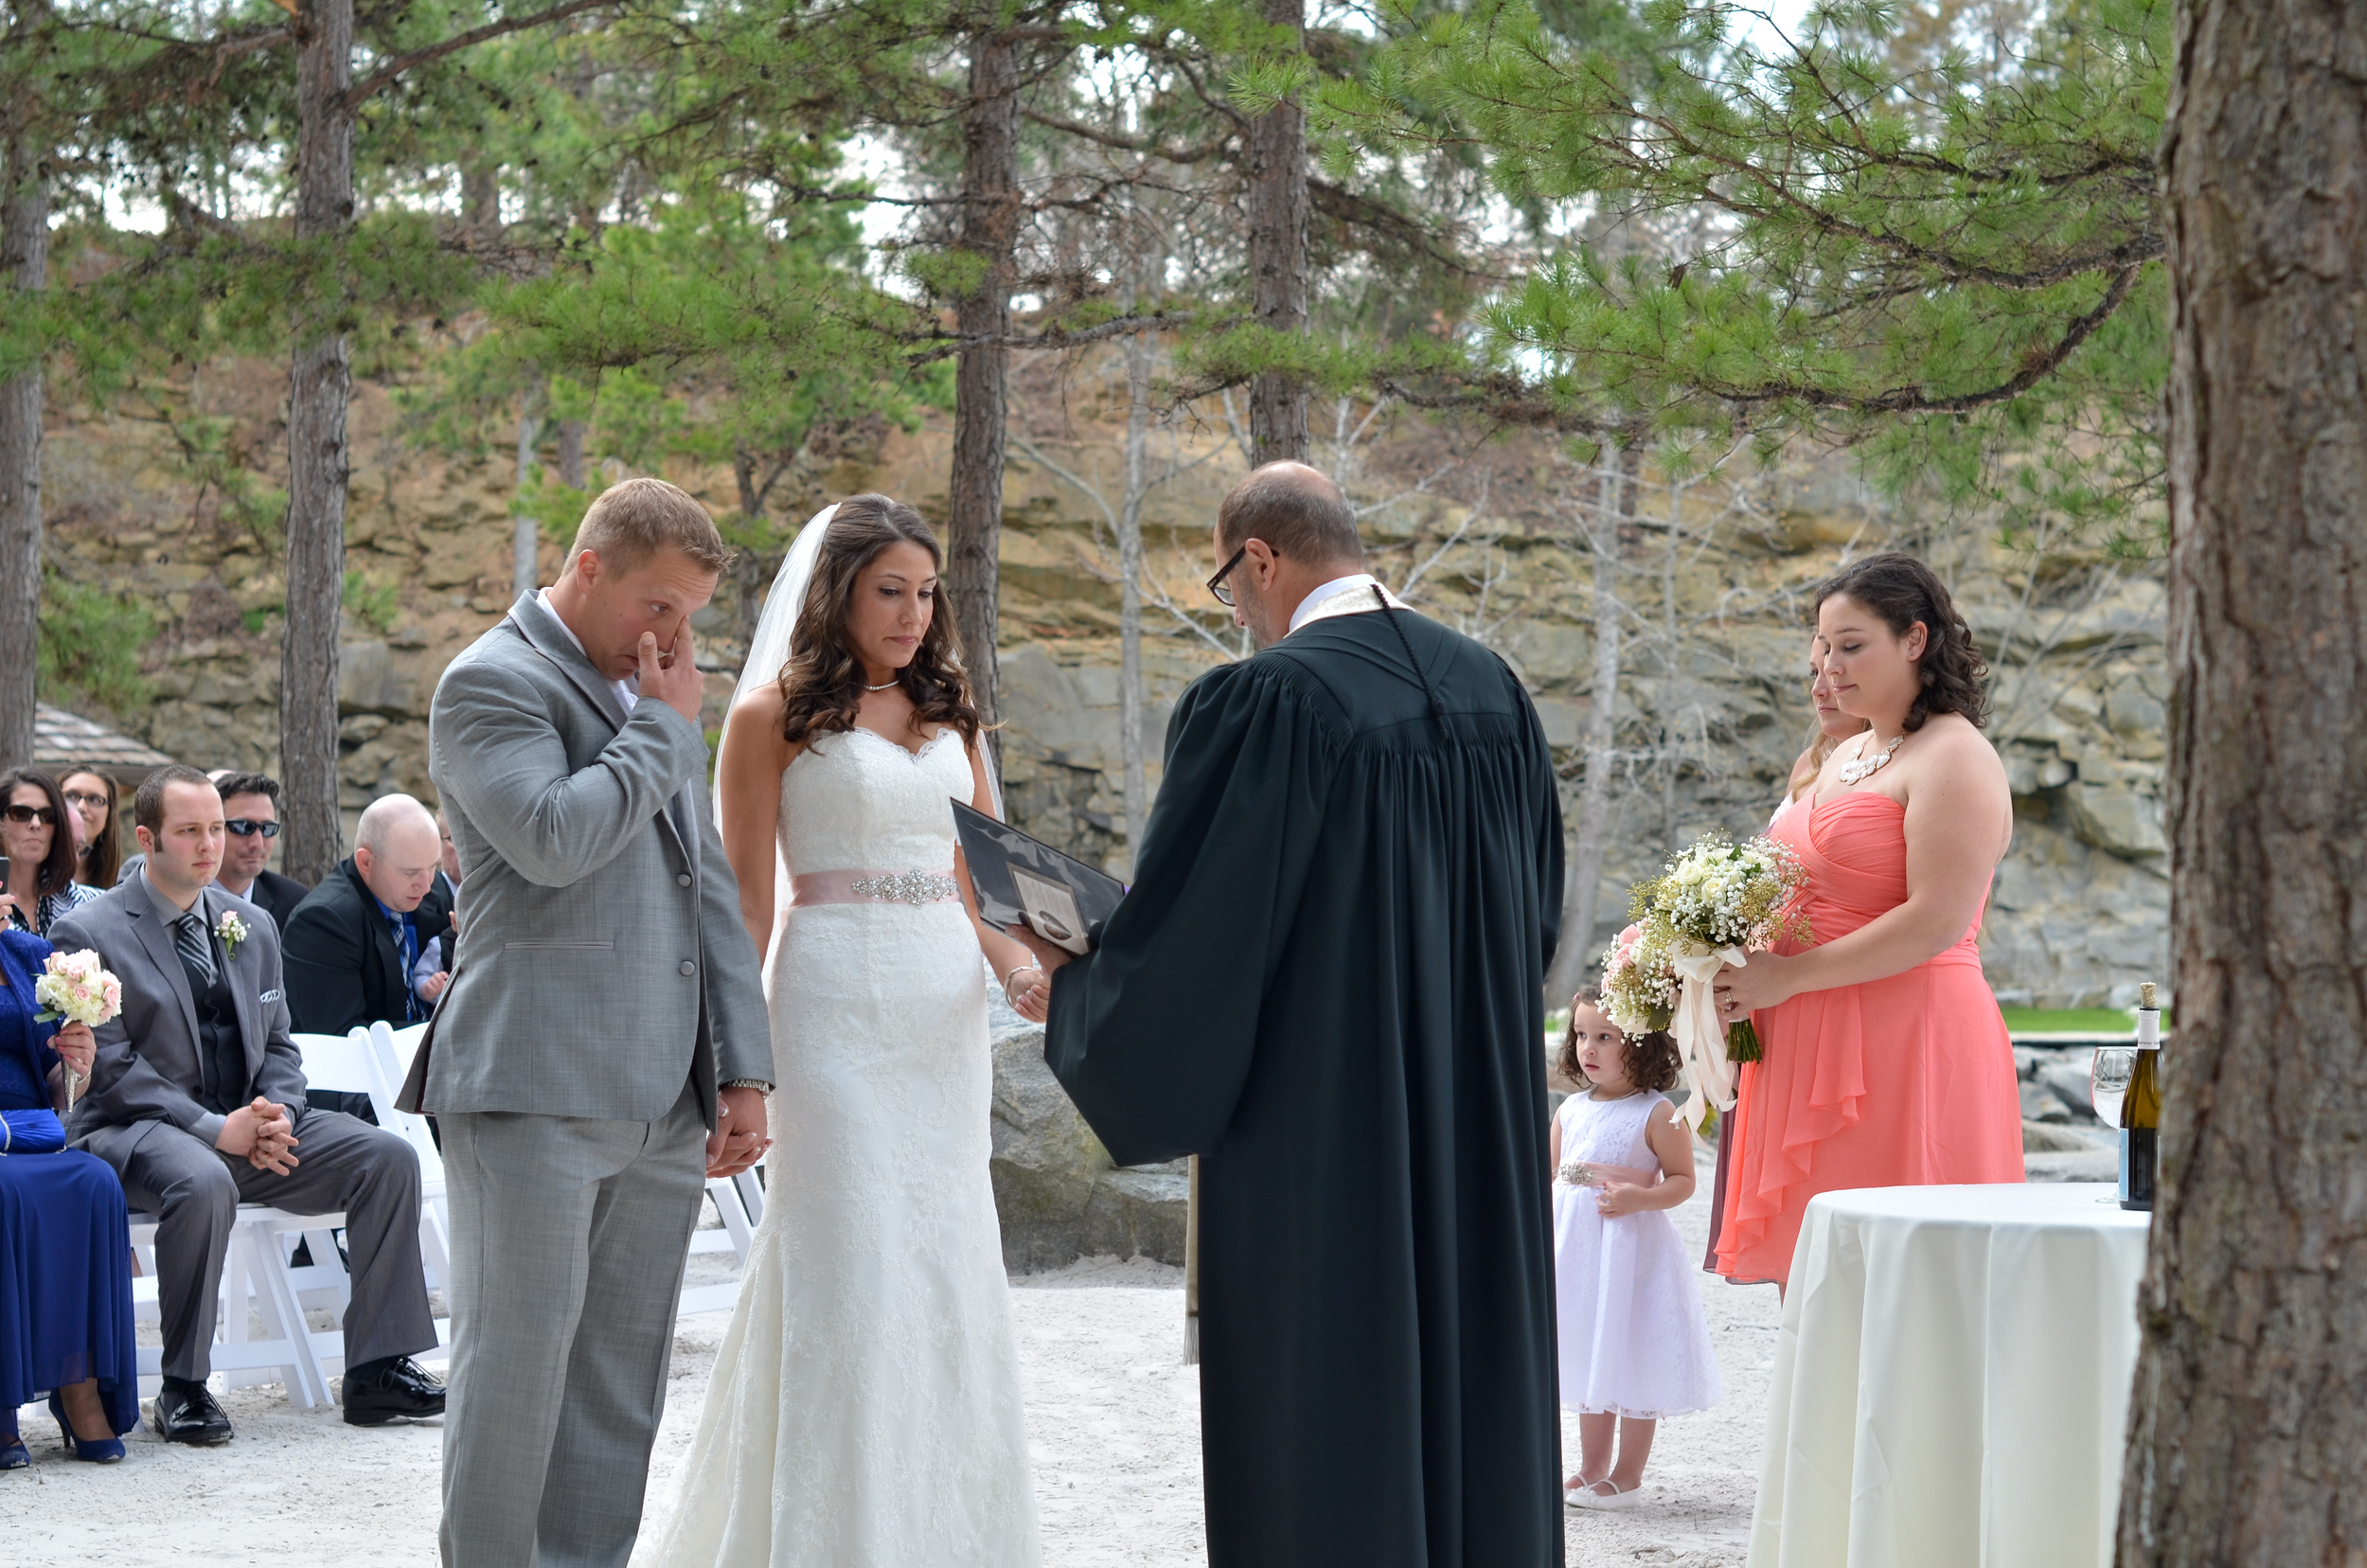 The personal blessing of her father was very touching.